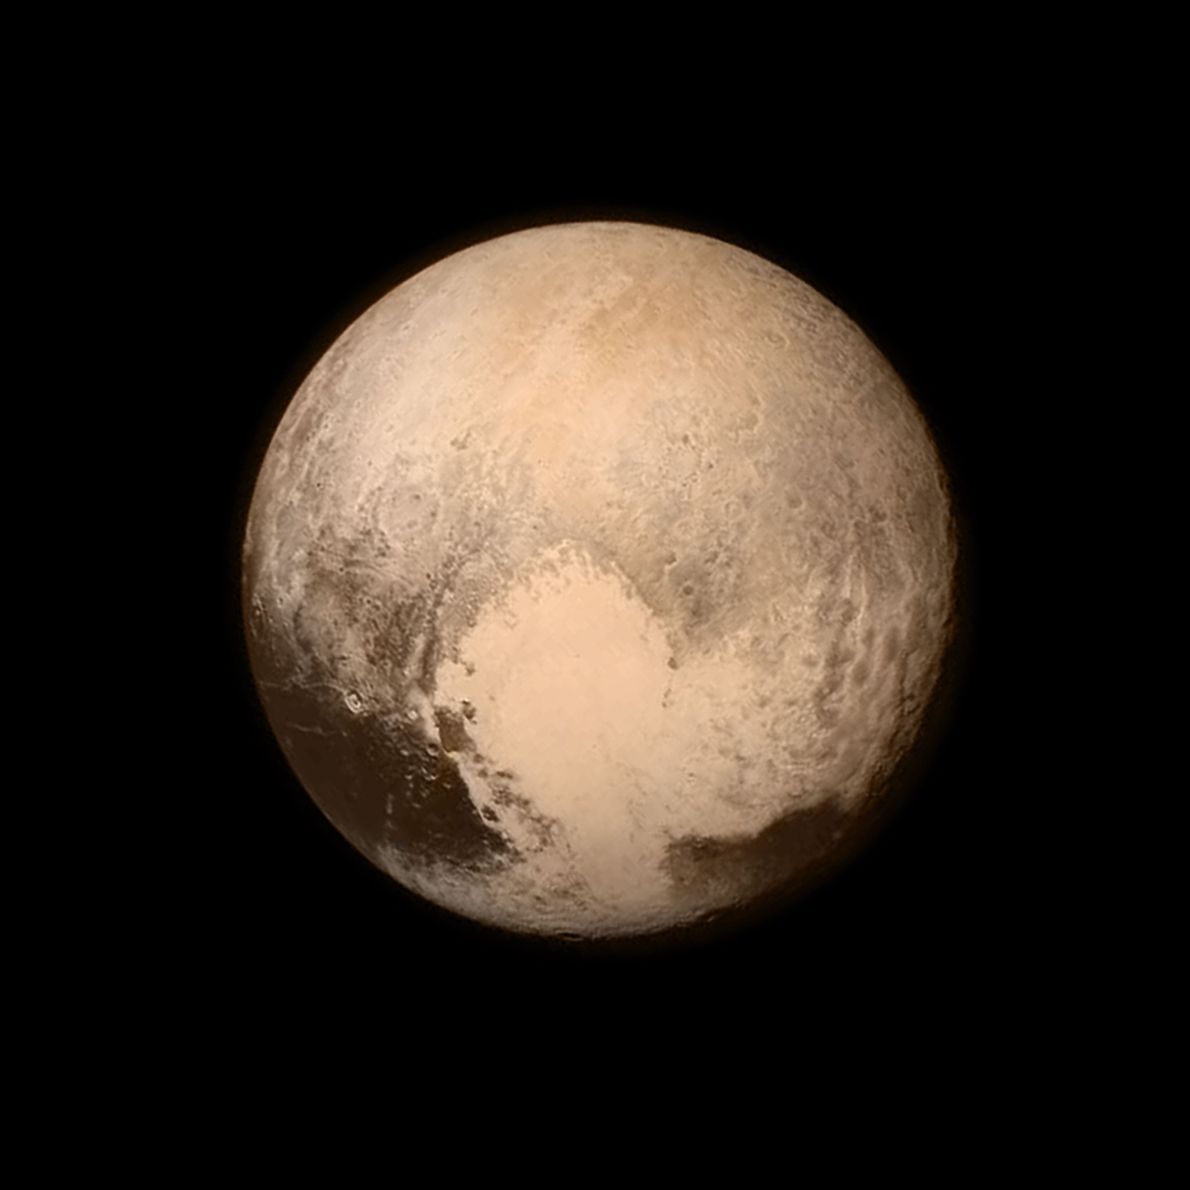 Taken July 13, 2015, this is the last image New Horizons sent before its July 14 ...